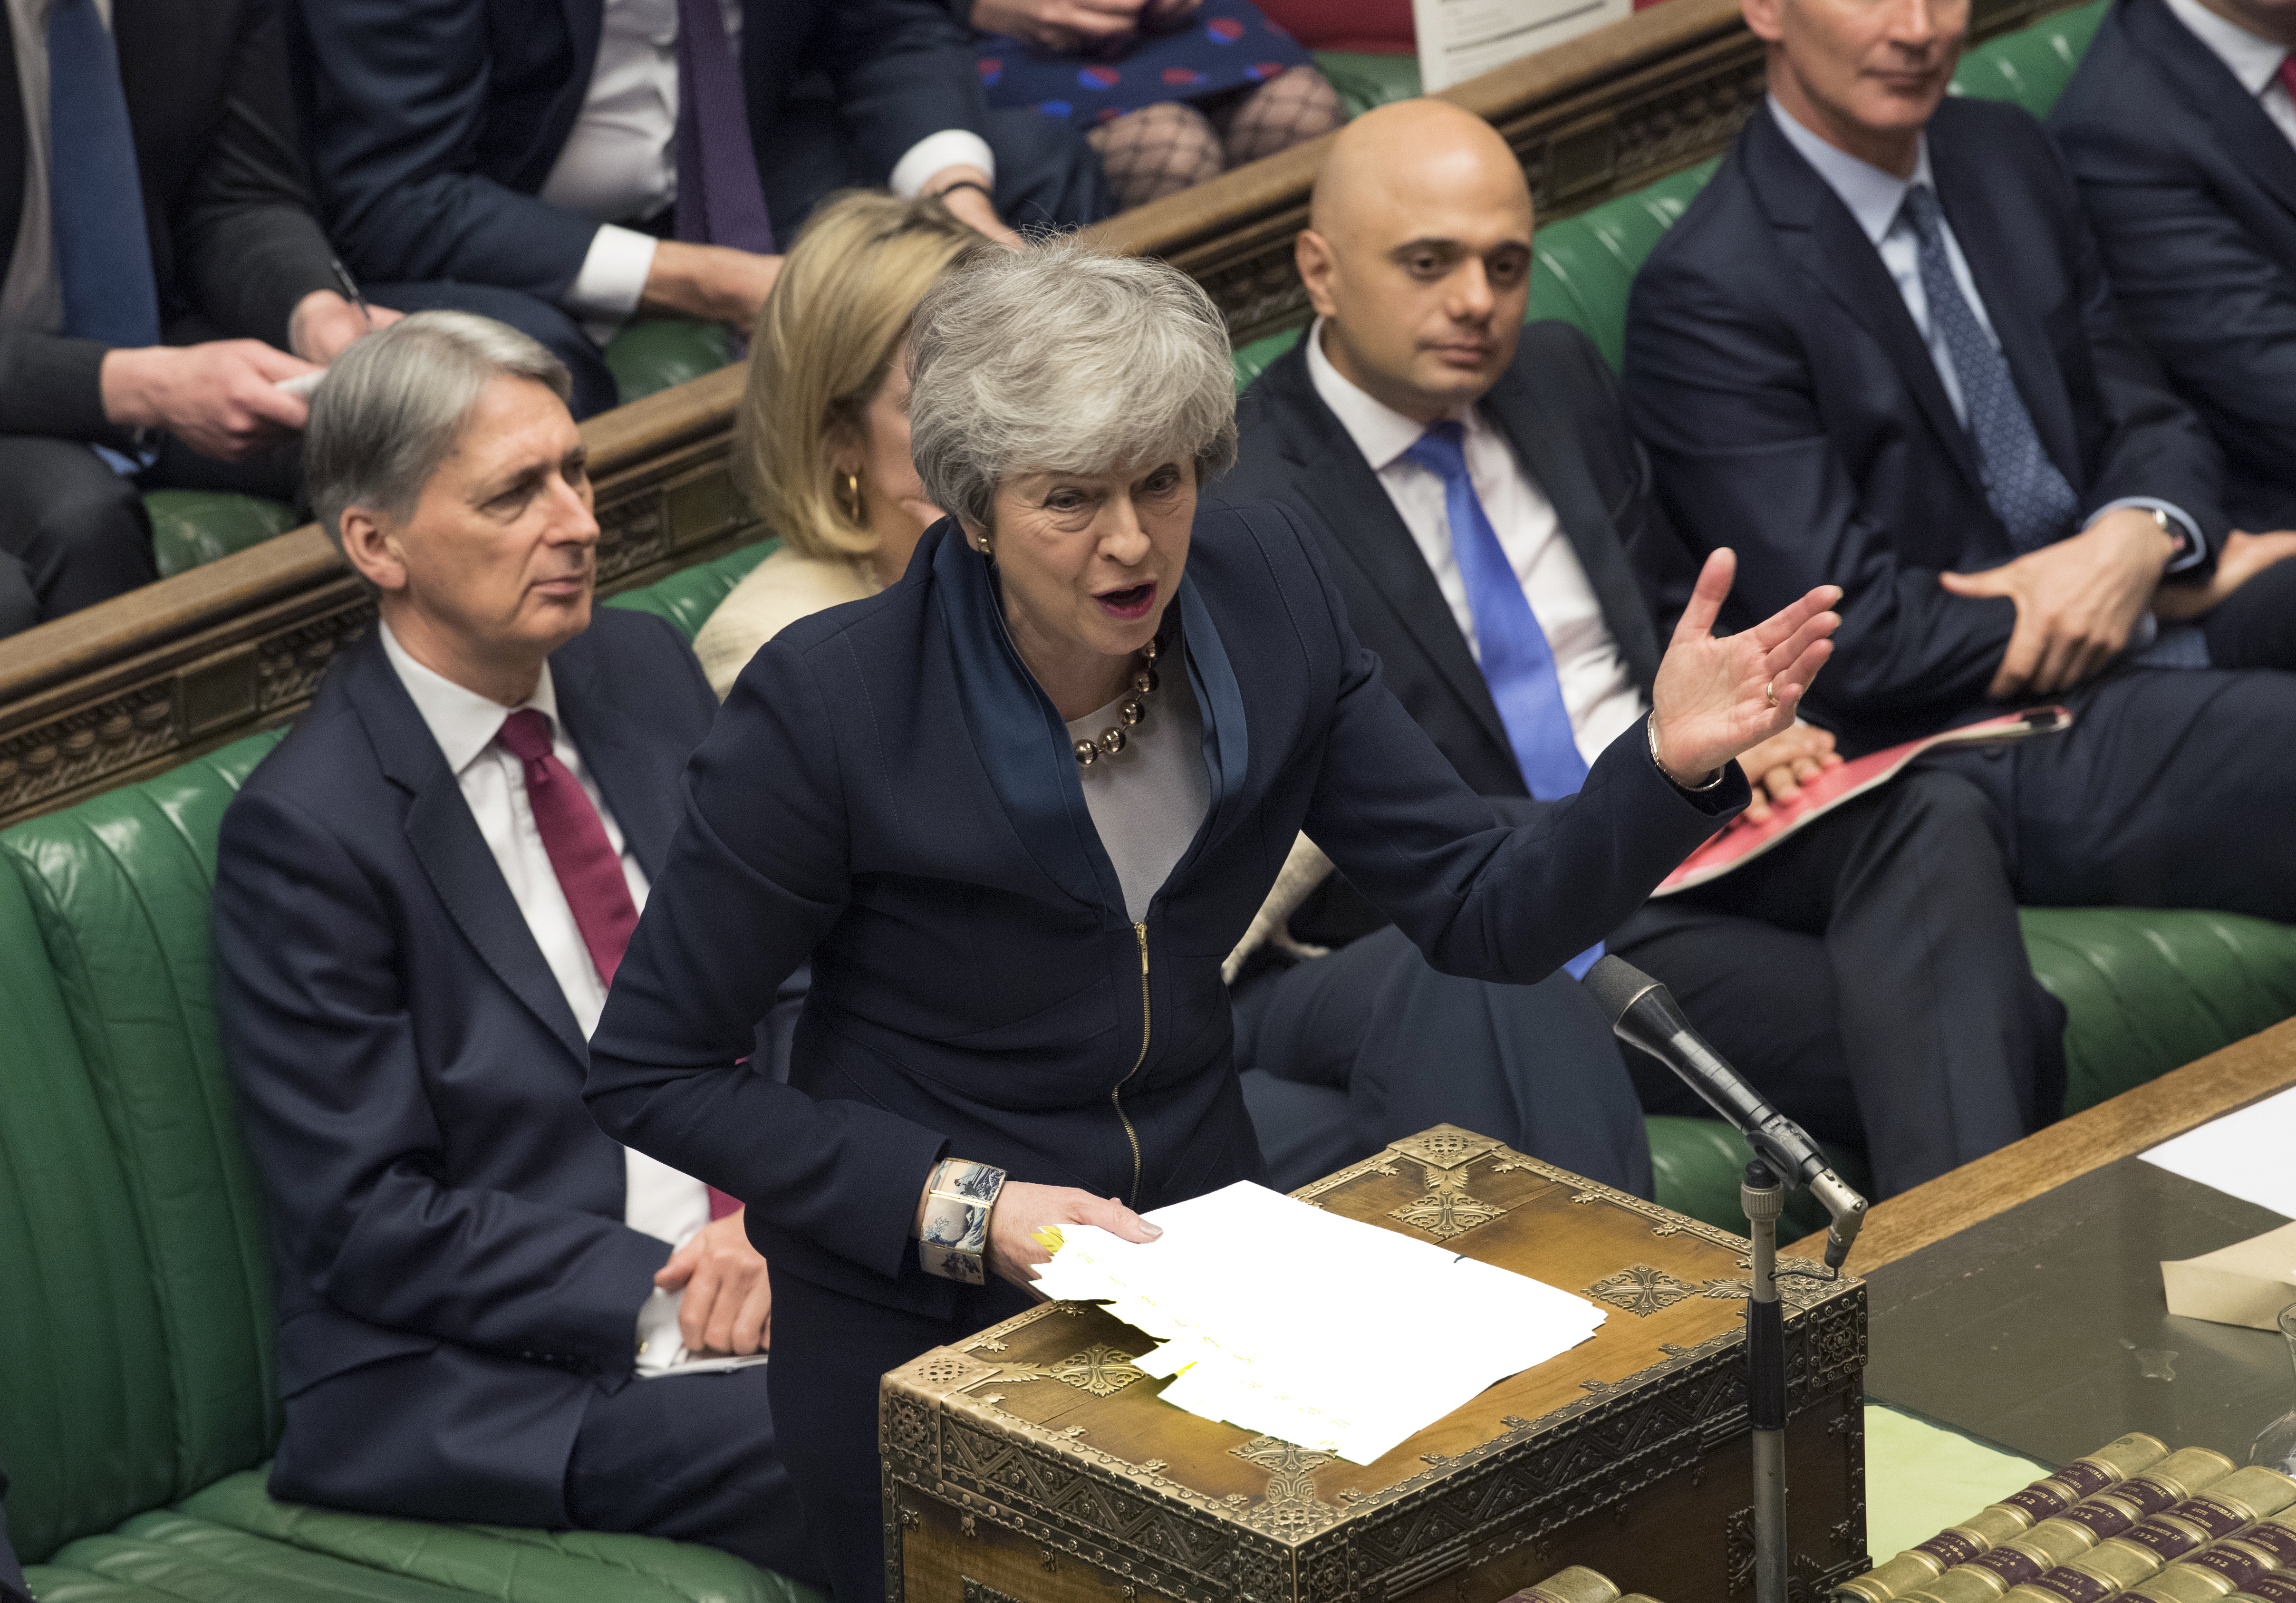 Britain's Prime Minister Theresa May addresses MP's in the Palace of Westminster in London on Wednesday, April 3, 2019